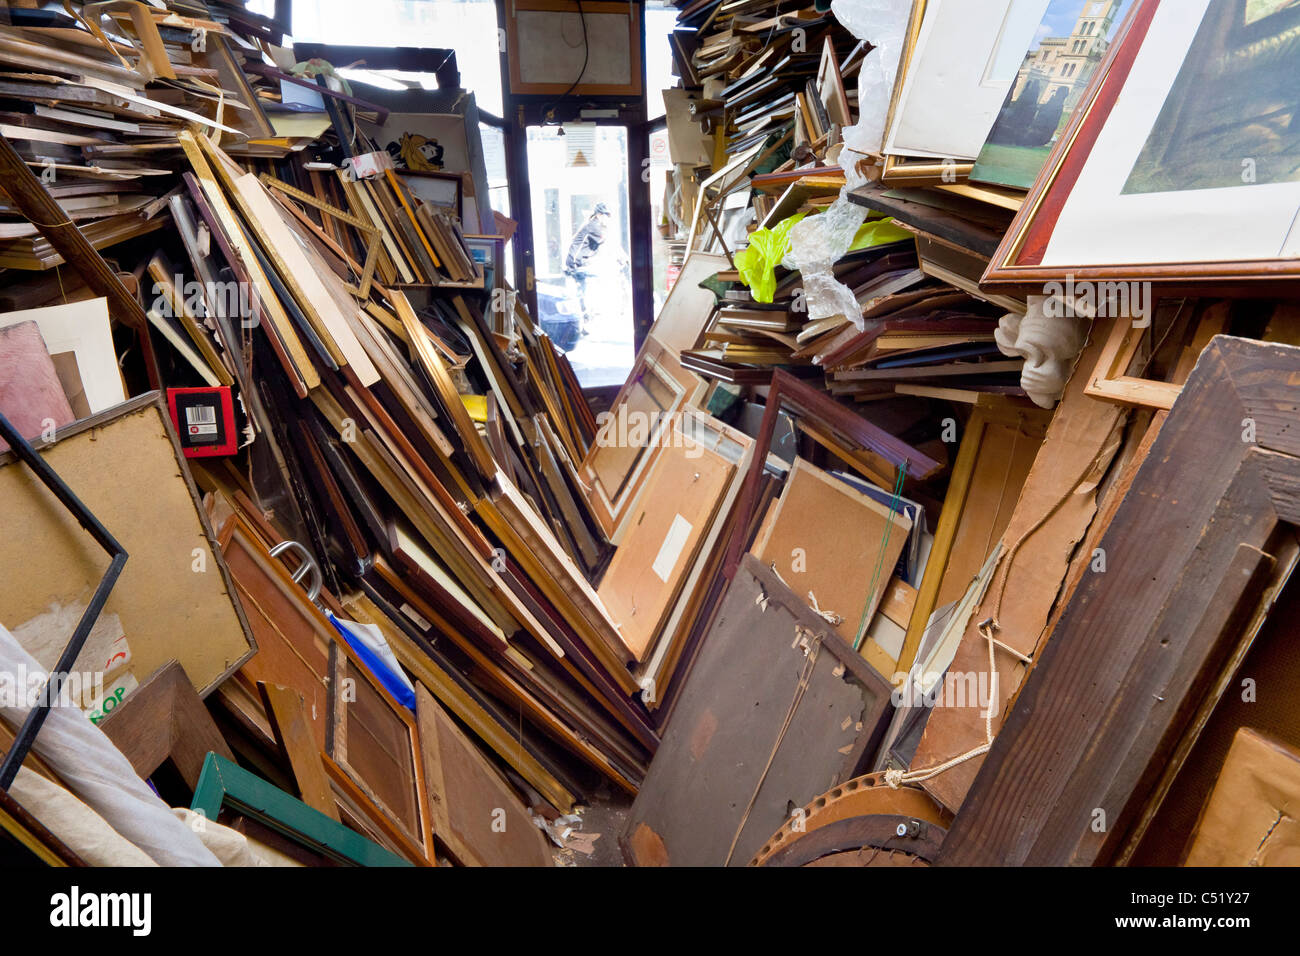 The over-stocked Ryde Framing picture framing shop in Ryde Isle of Wight. JMH5150 - Stock Image